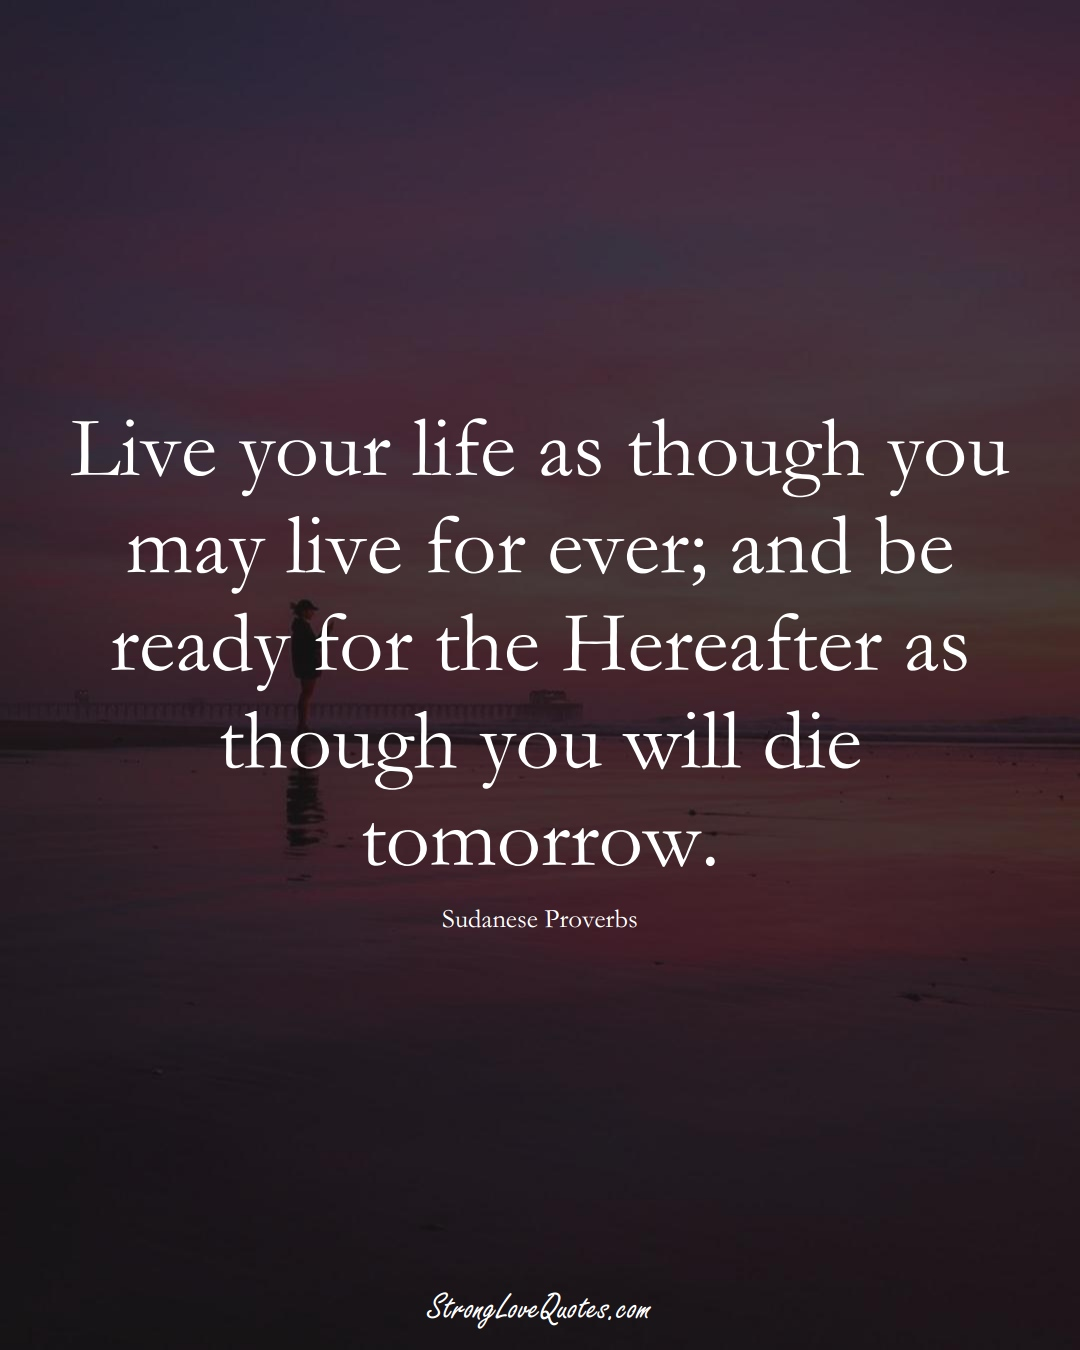 Live your life as though you may live for ever; and be ready for the Hereafter as though you will die tomorrow. (Sudanese Sayings);  #AfricanSayings